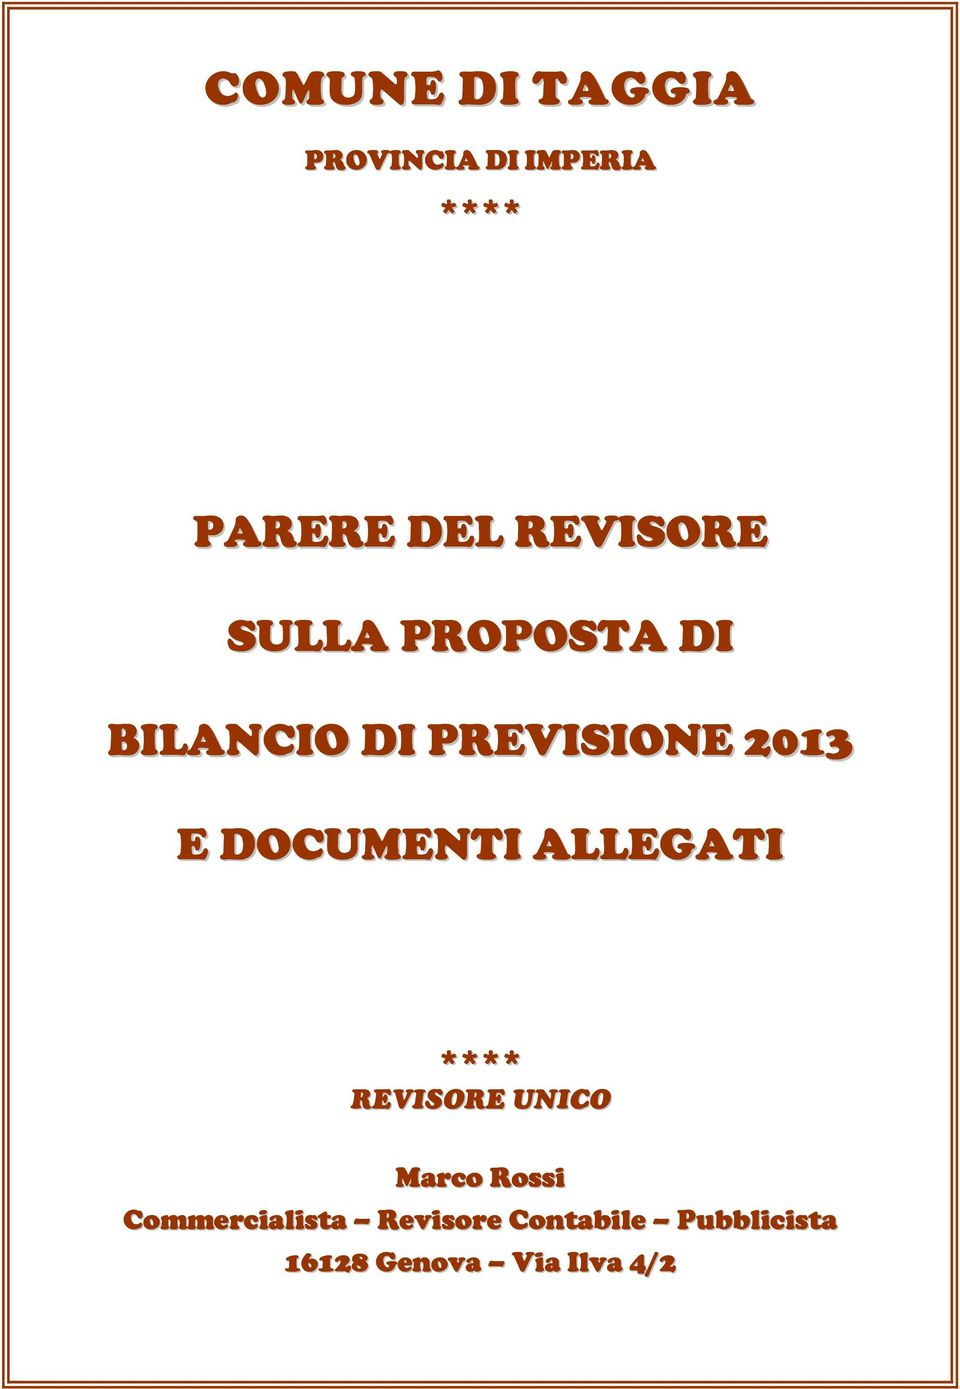 DOCUMENTI ALLEGATI **** REVISORE UNICO Marco Rossi